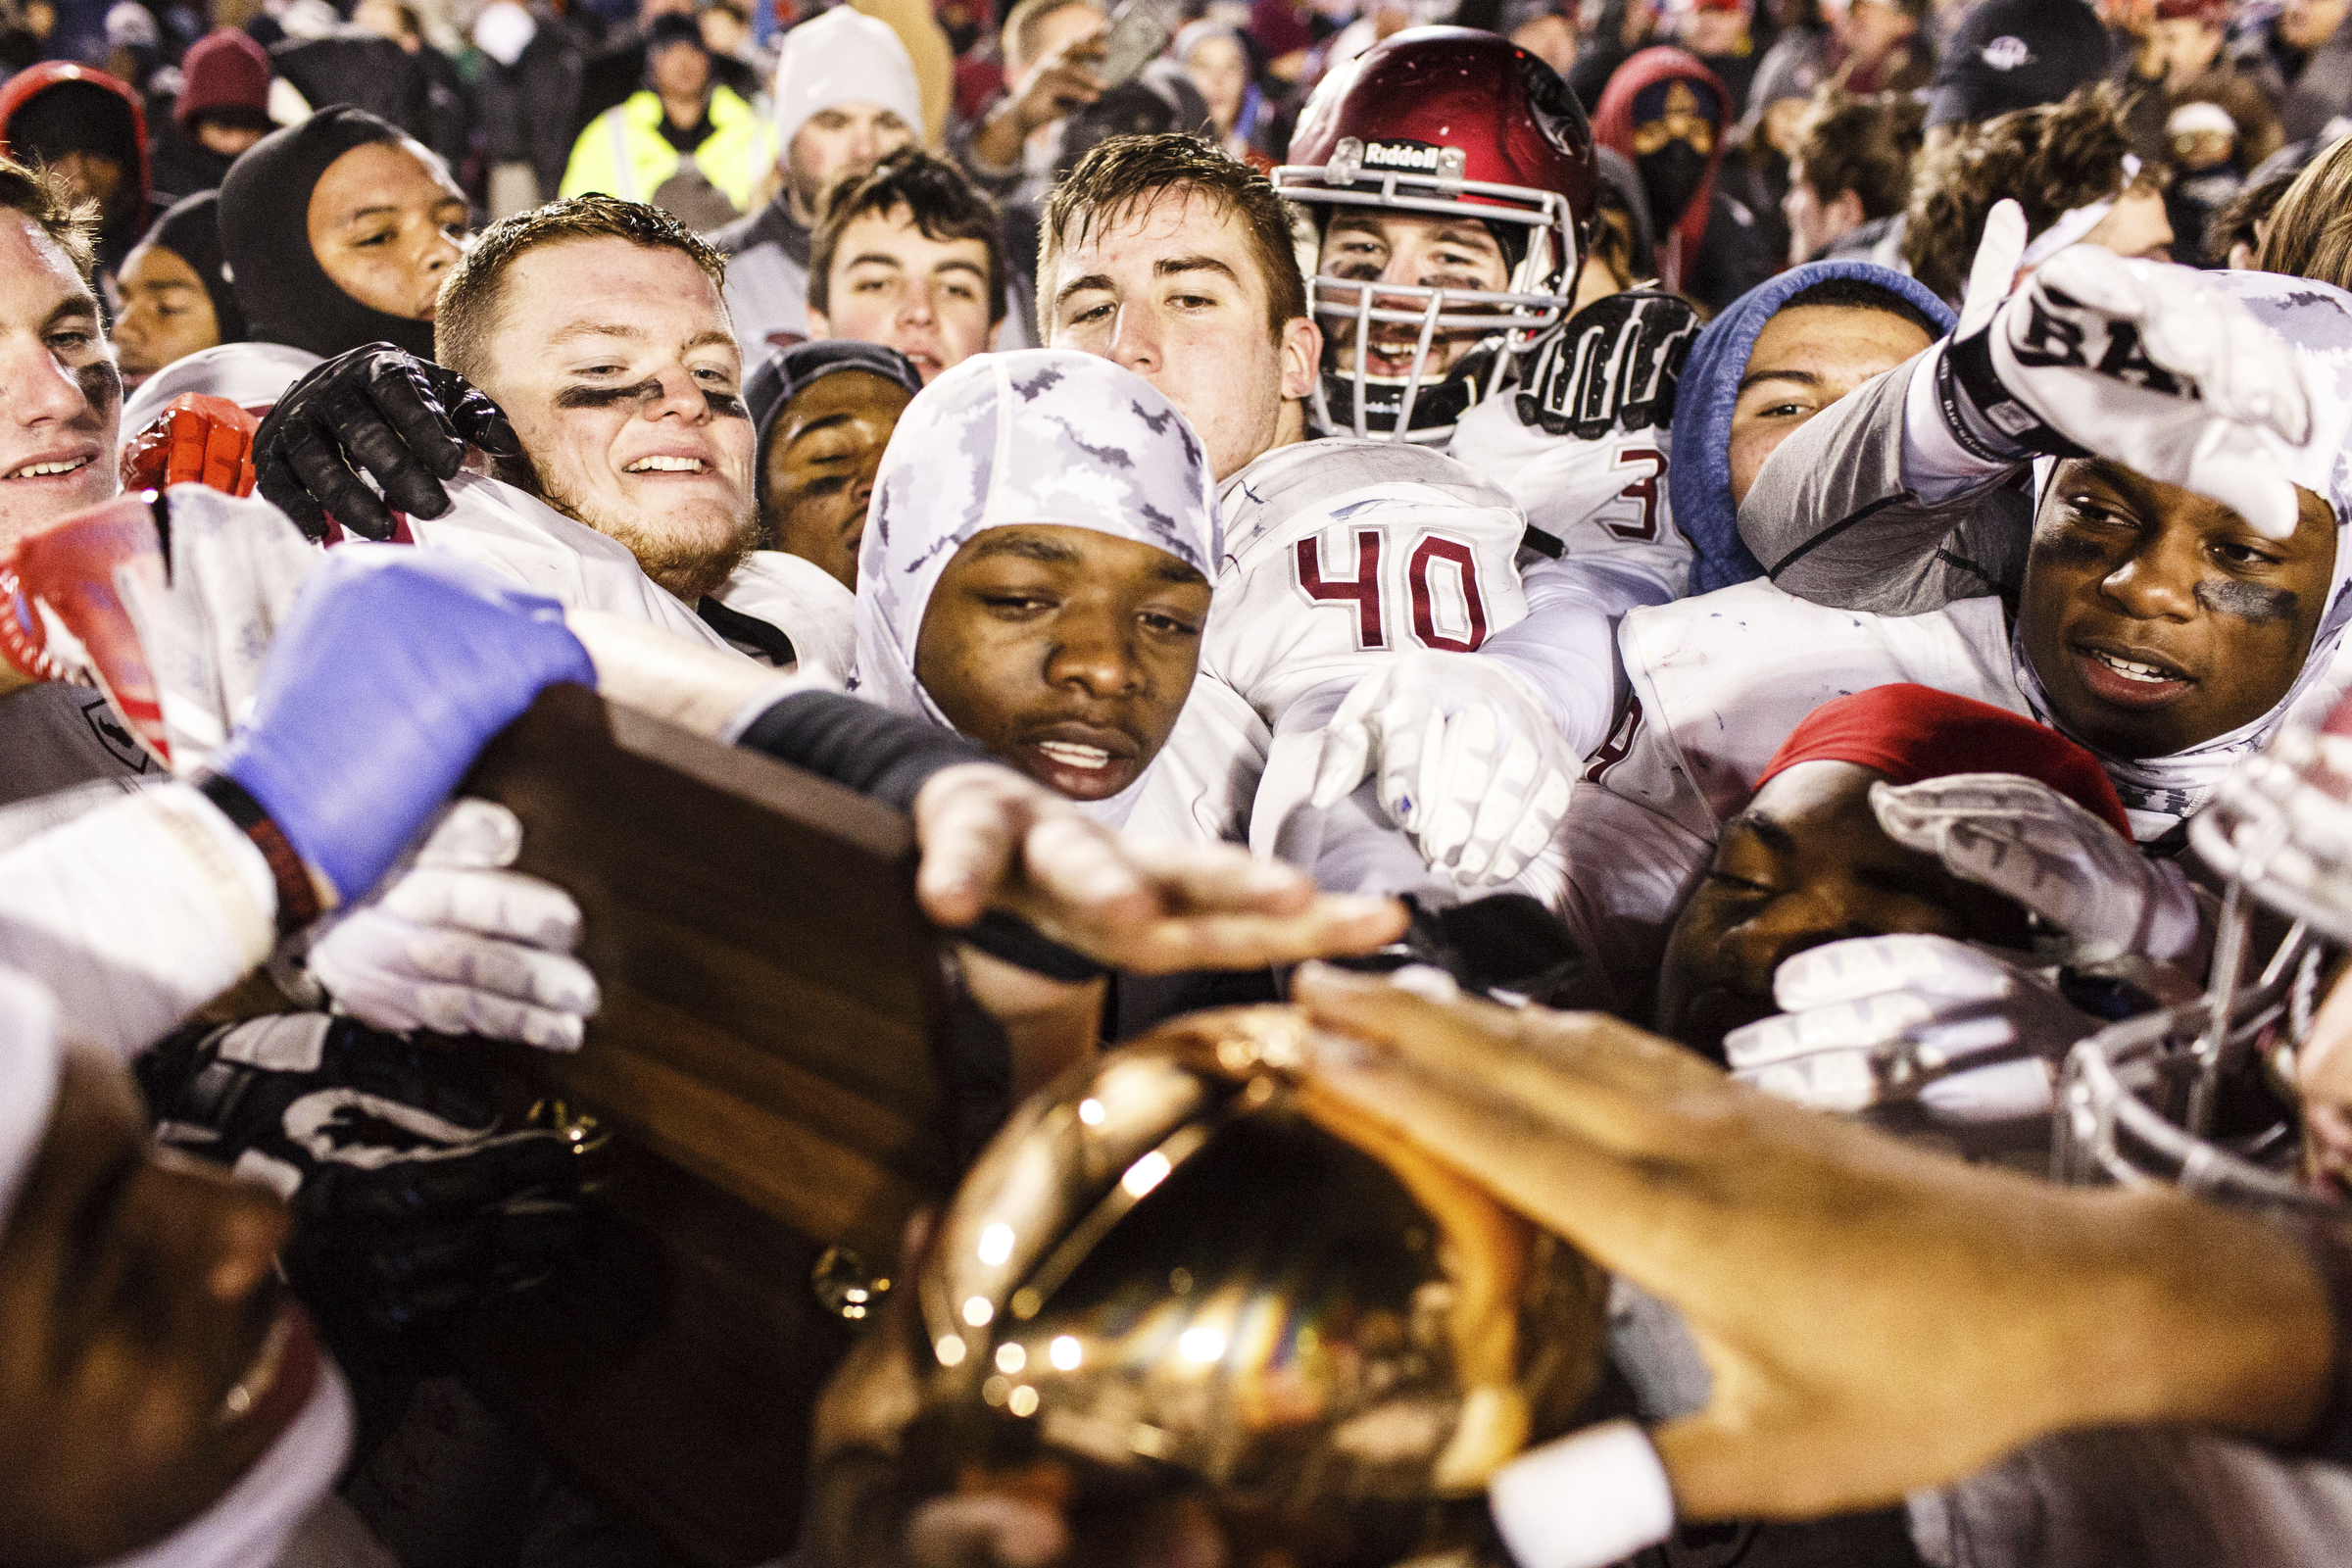 St. Joseph's Prep celebrates after defeating Central Catholic in the PIAA Class 6A state championship game Saturday, Dec. 10, 2016, in Hershey, Pa. (James Robinson/PennLive.com via AP) ORG XMIT: PAHAP307